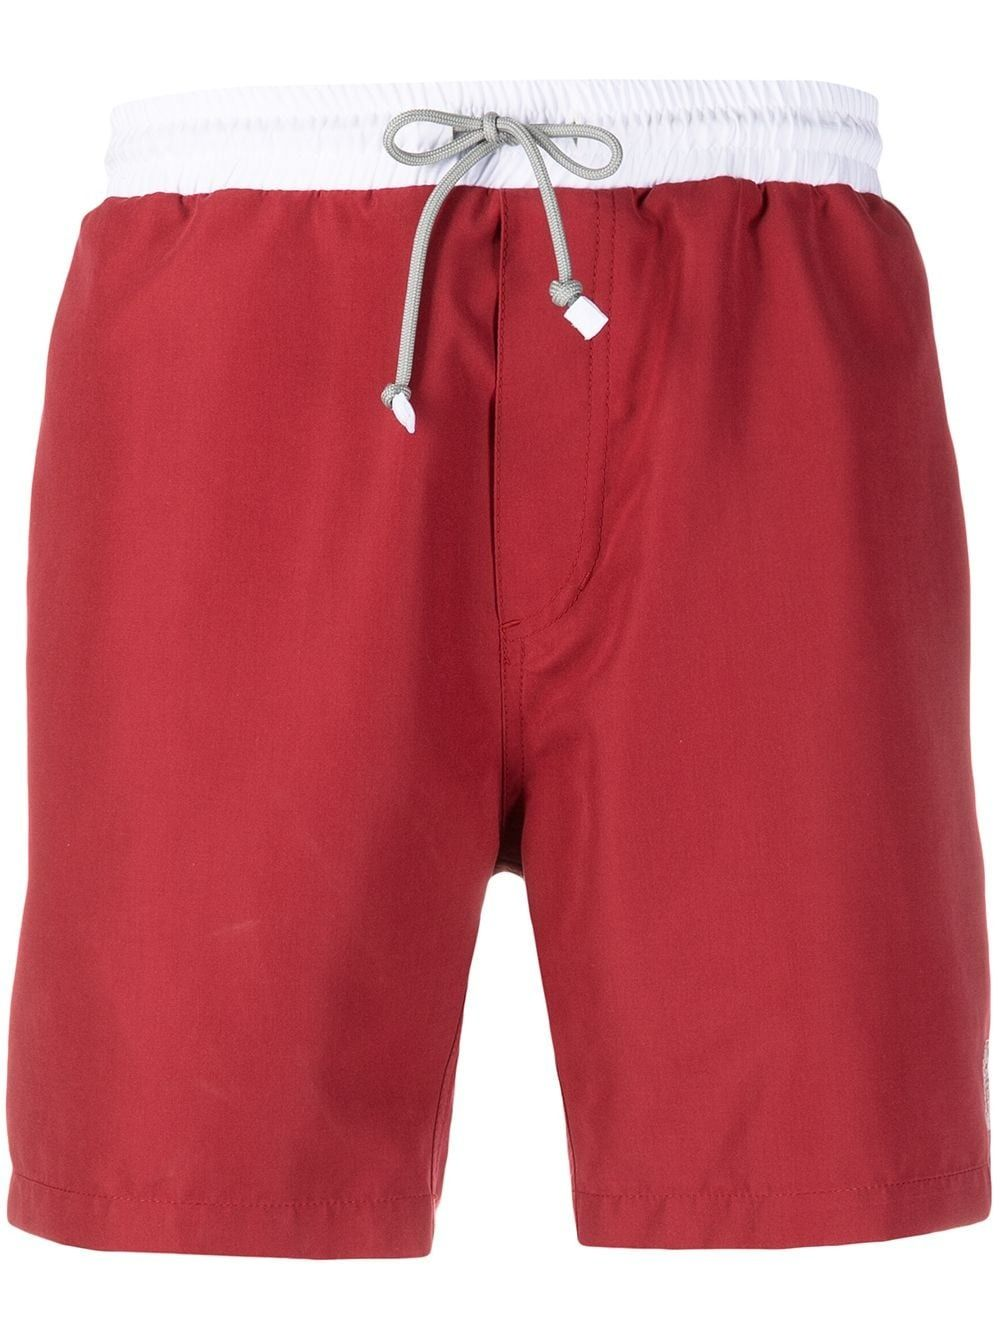 Brunello Cucinelli Clothing BRUNELLO CUCINELLI MEN'S MQ828038CT387 RED POLYESTER TRUNKS